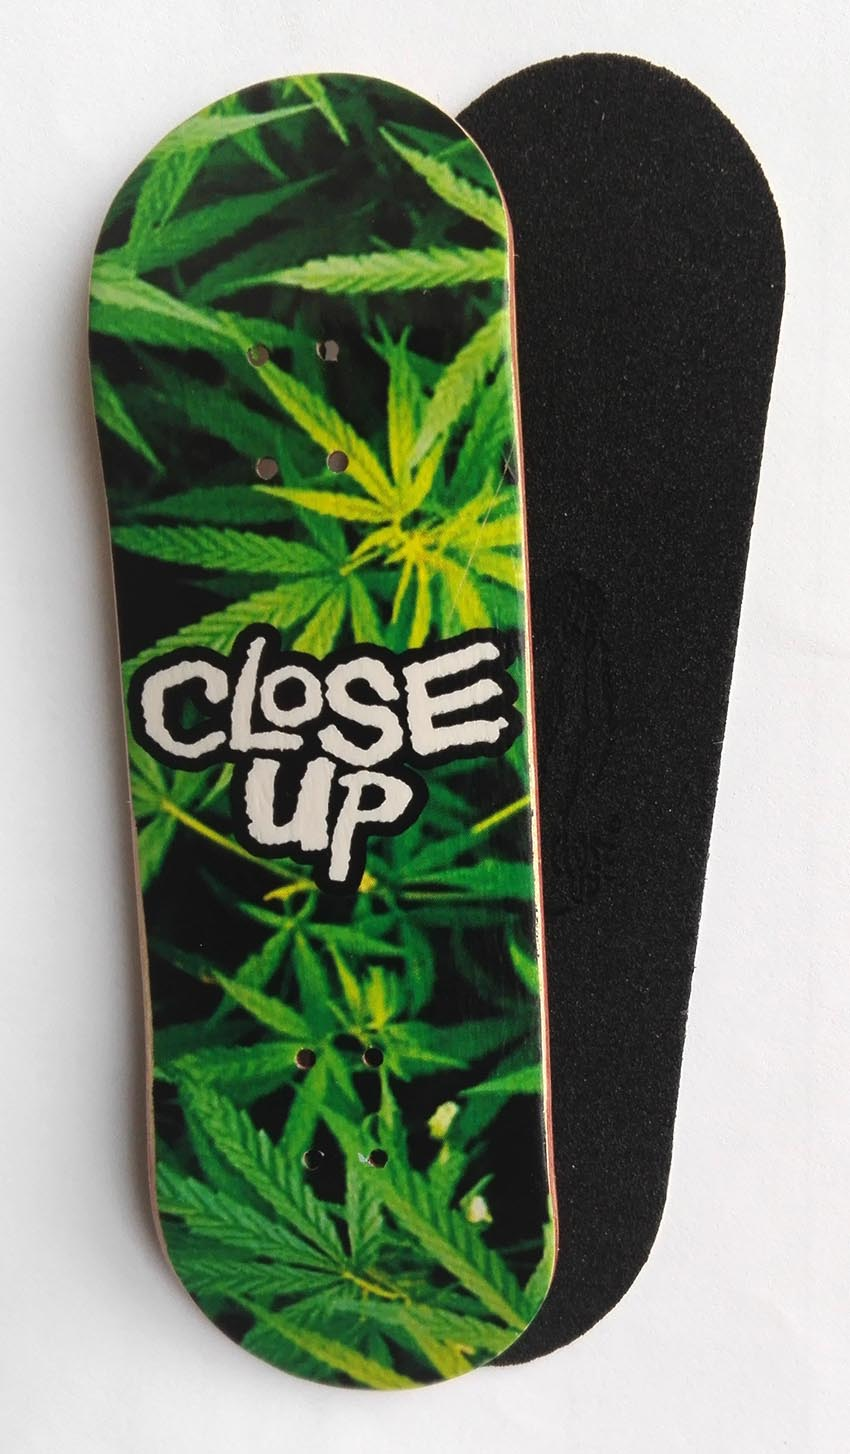 BOARD CLOSE UP FULL LEAVES 31MM MEDIUM CONCAVE + RIPTAPE